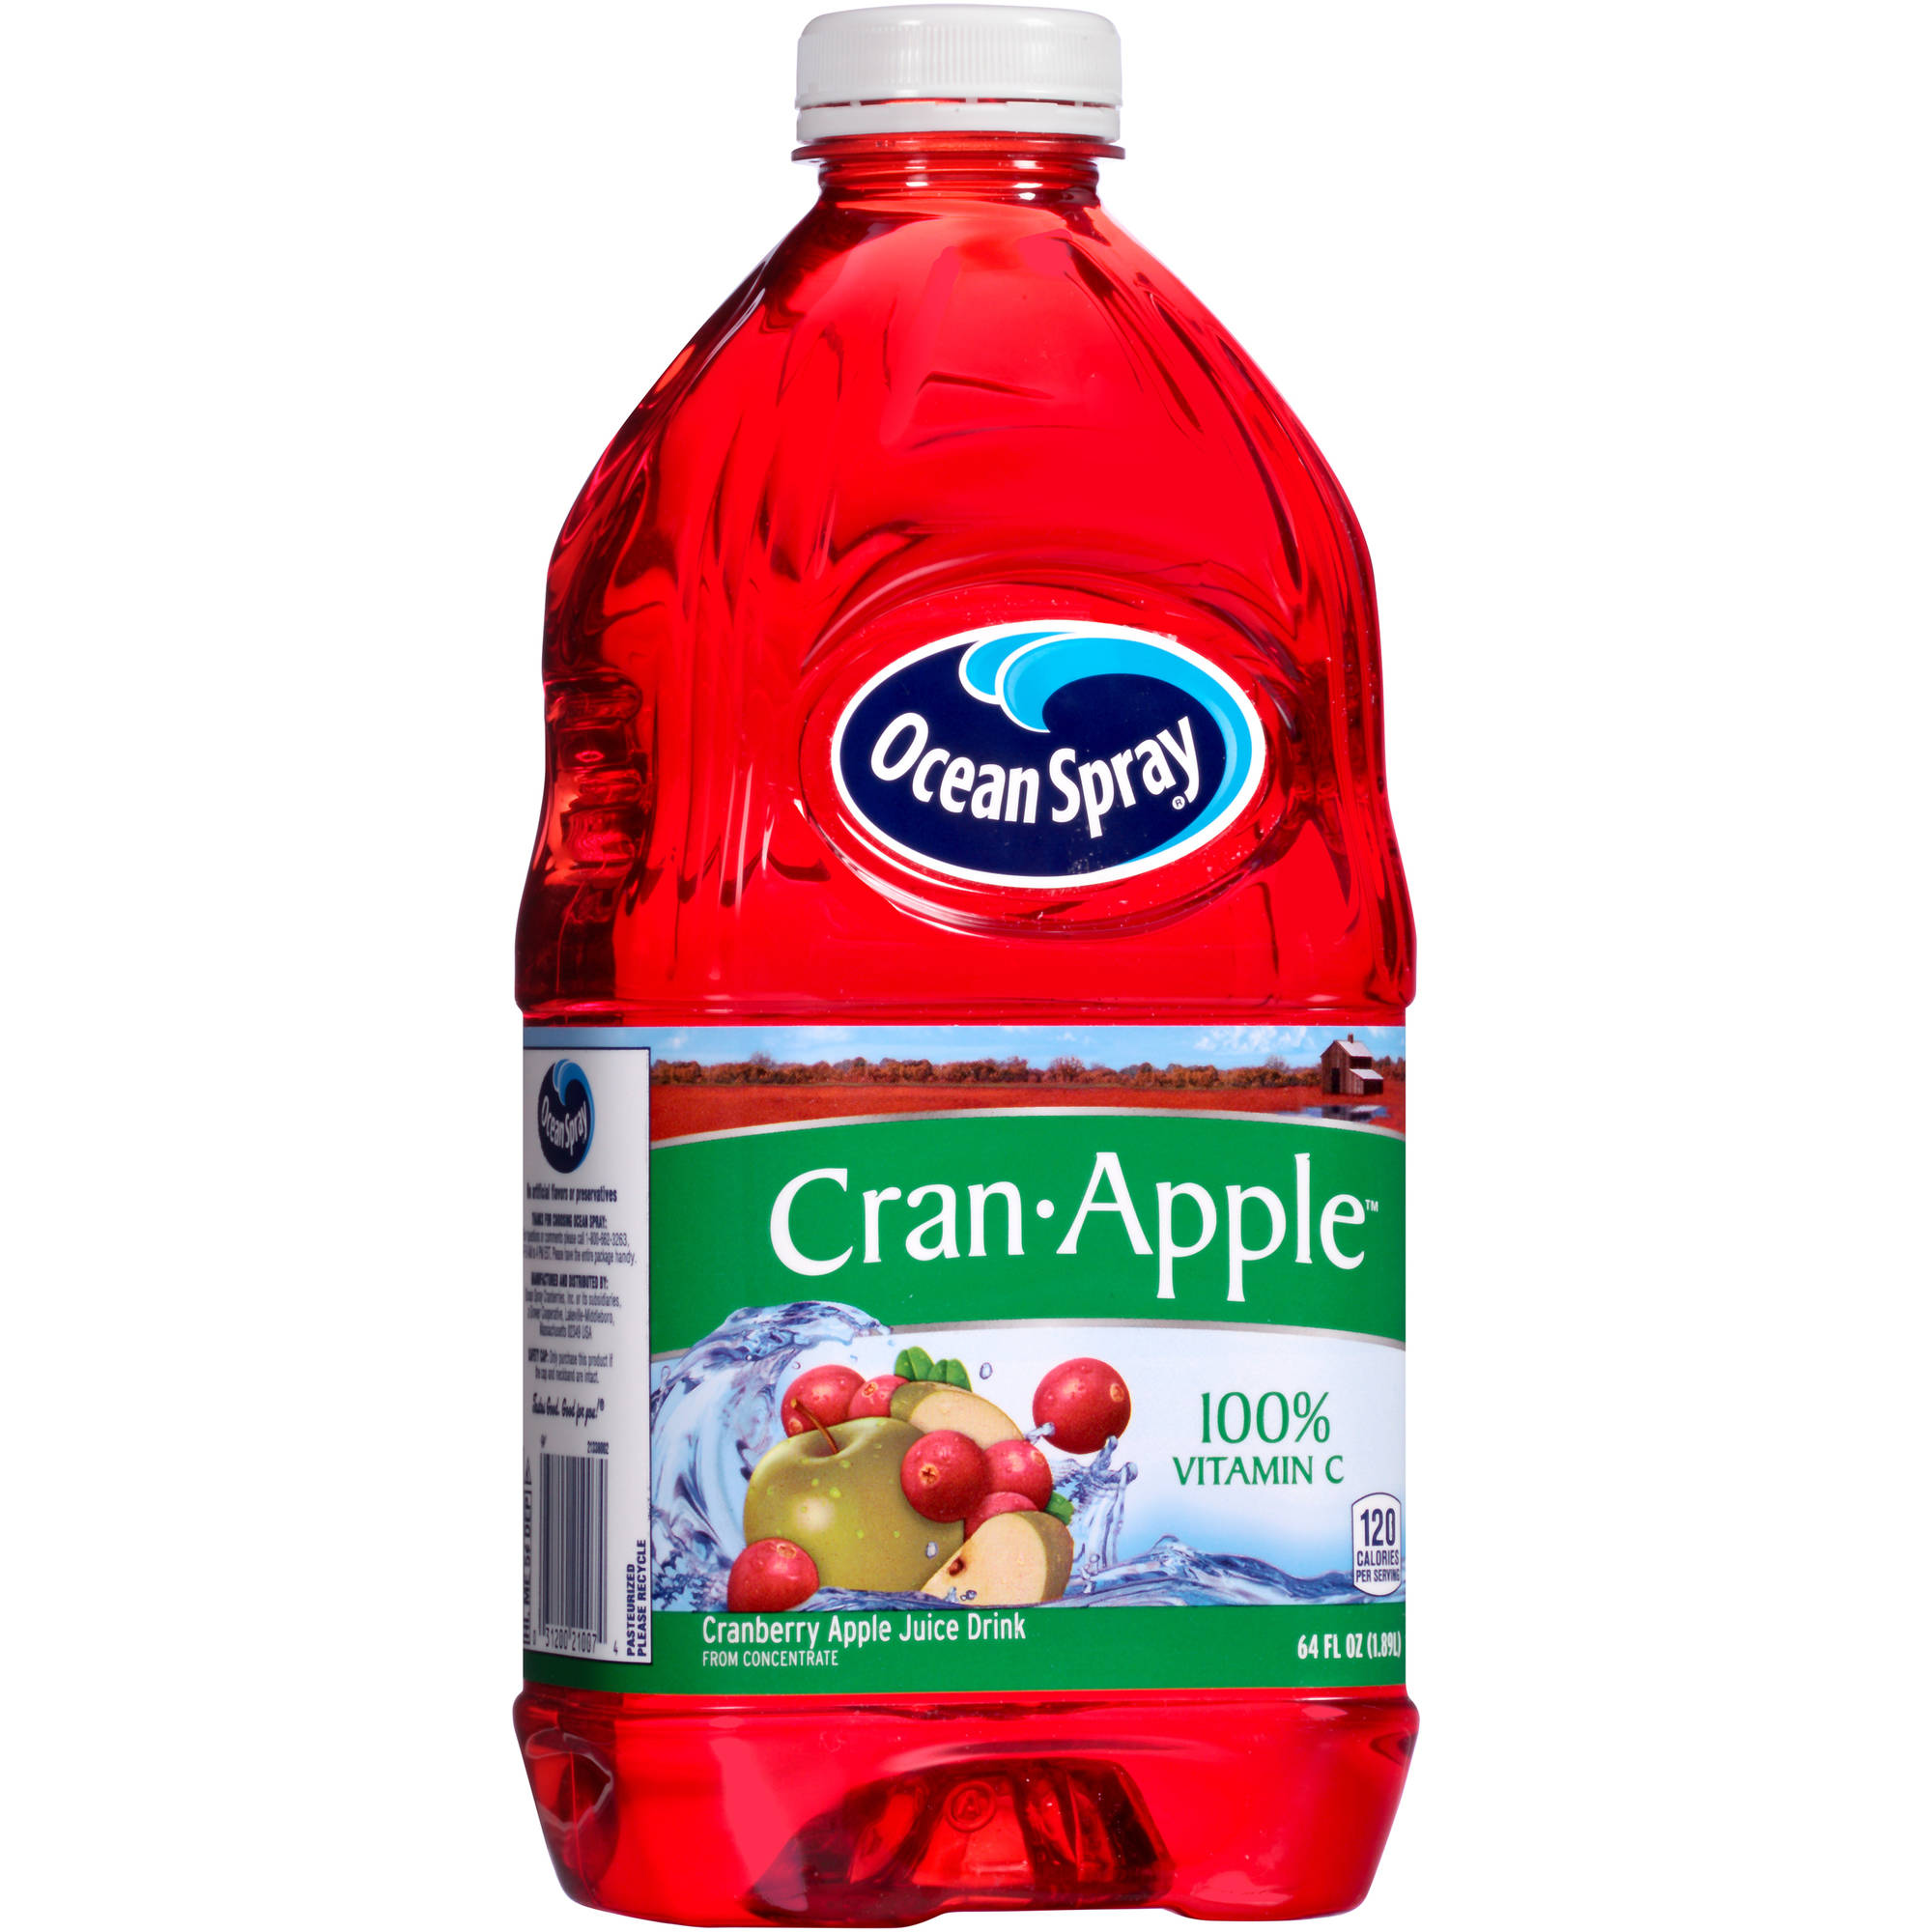 Ocean Spray: Cran-Apple Juice Drink, 64 Fl oz